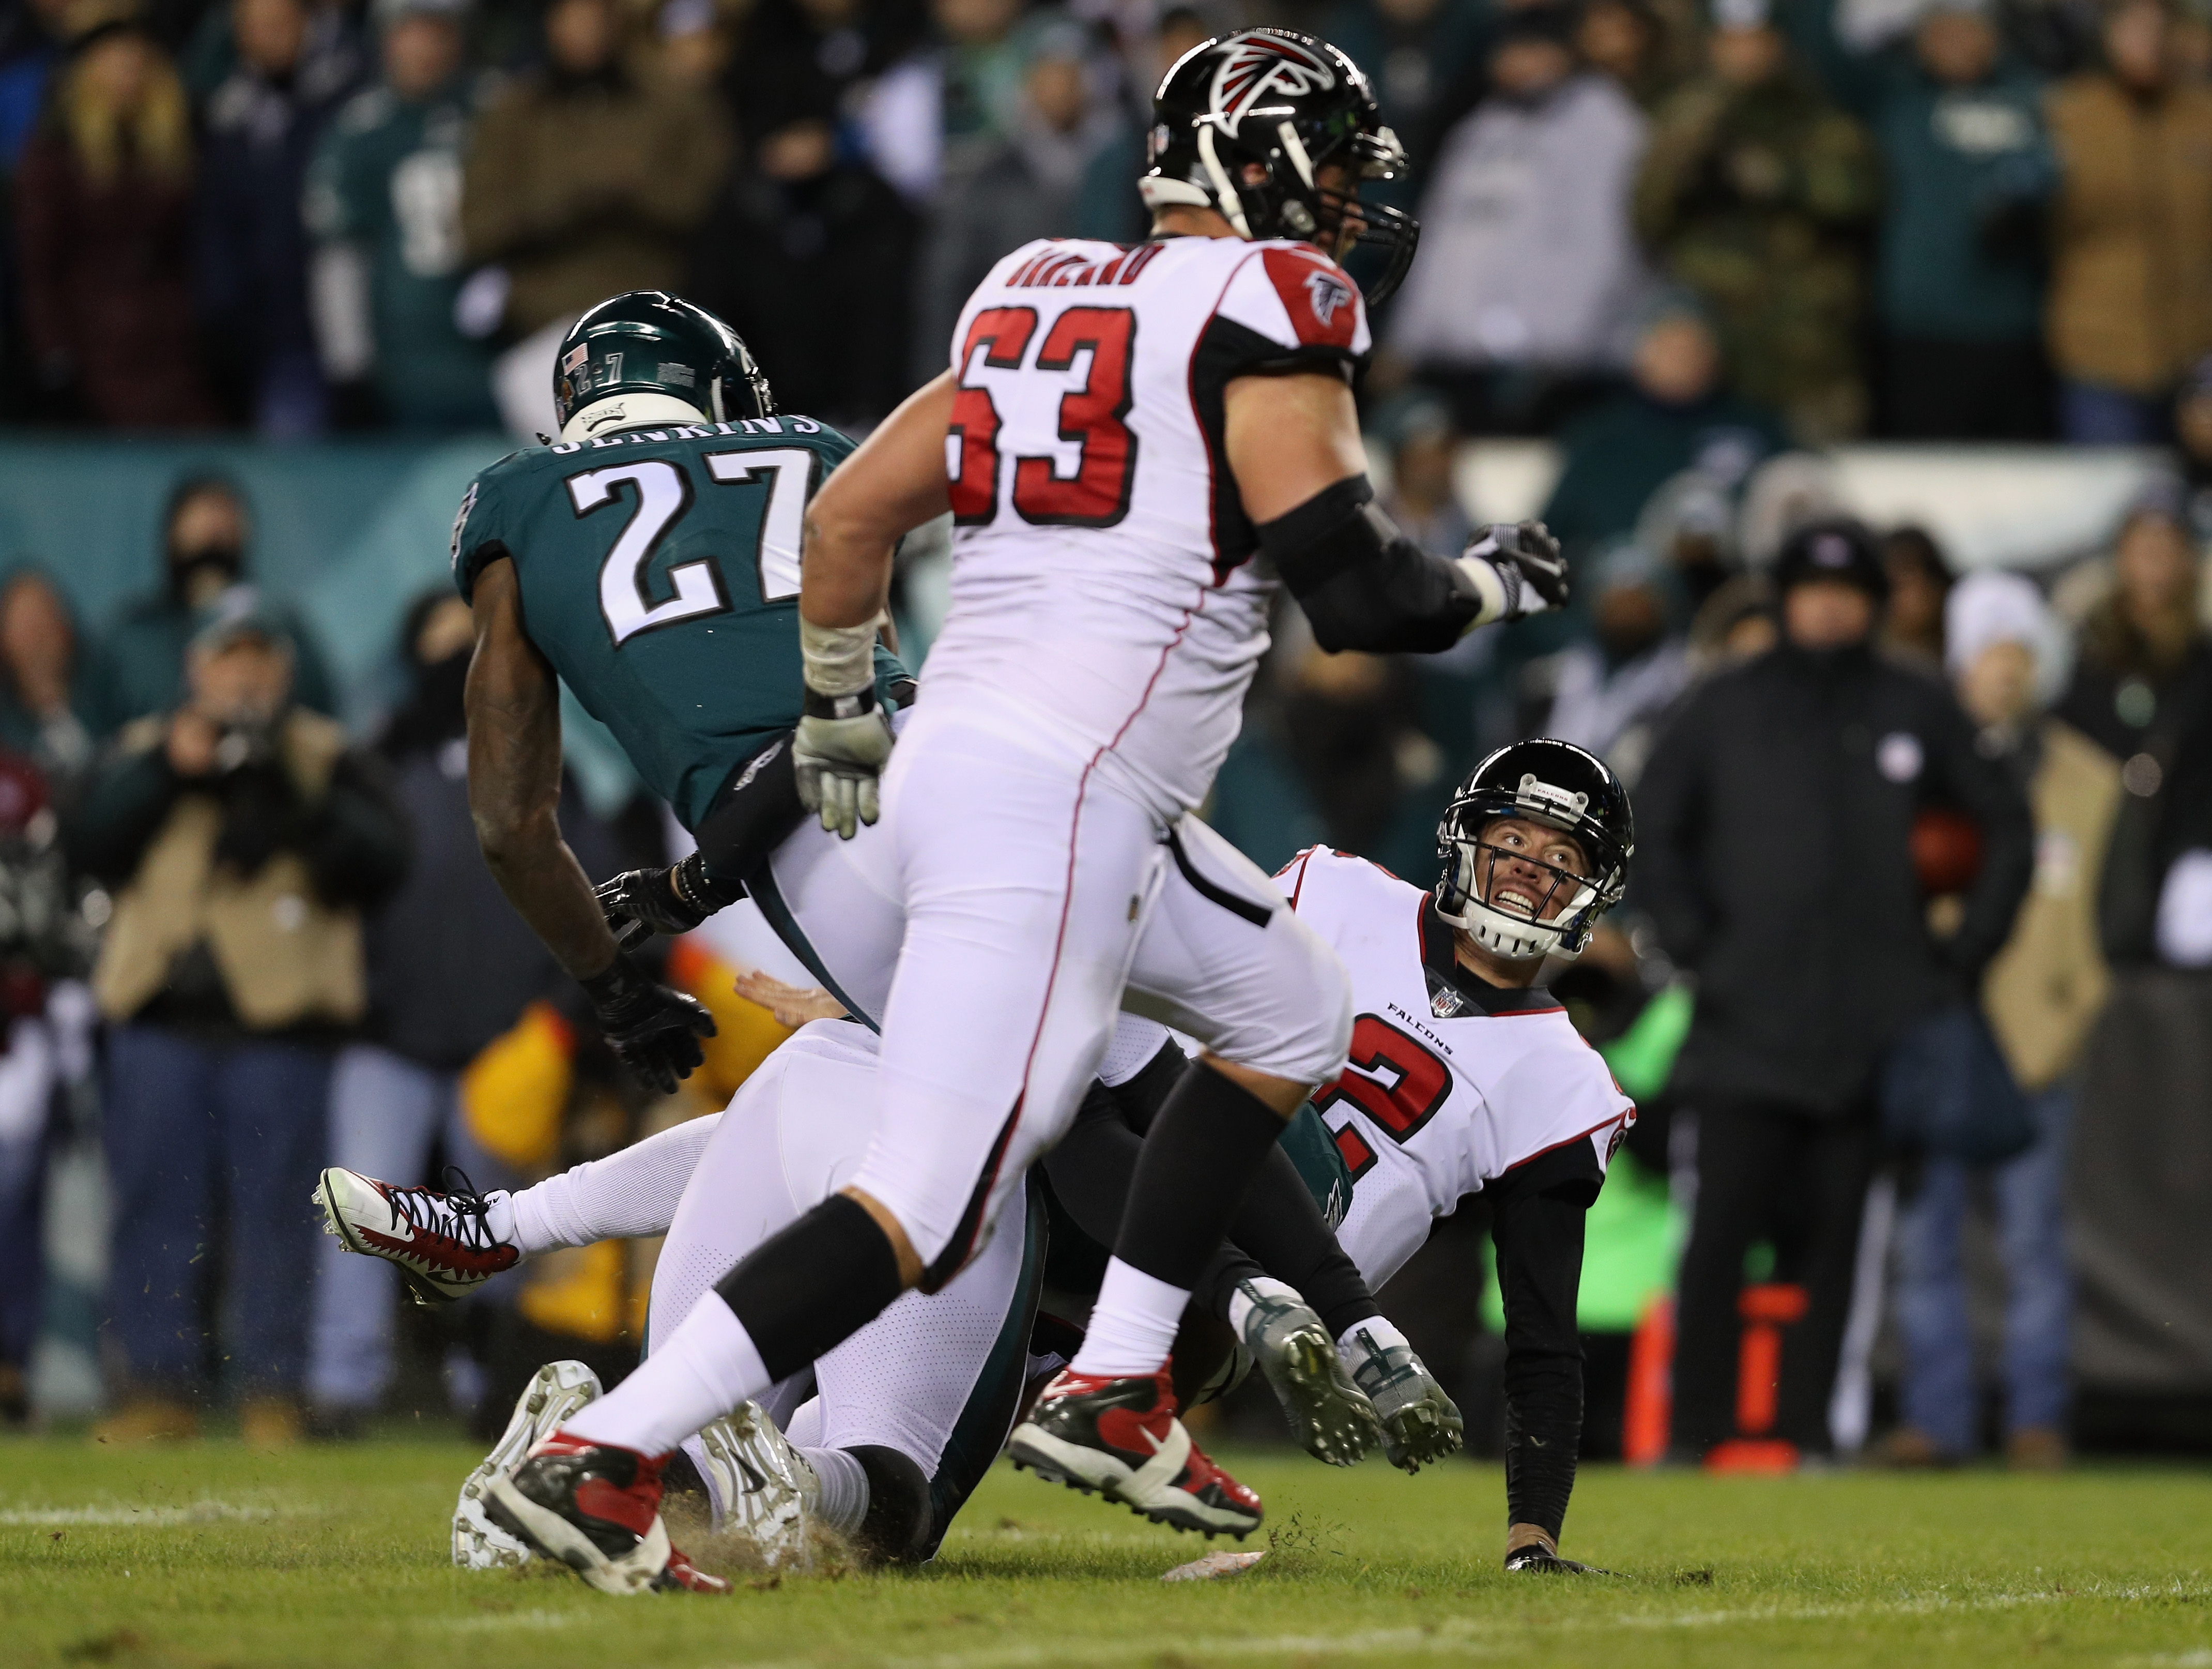 PHOTOS: Falcons vs. Eagles in NFC divisional playoff